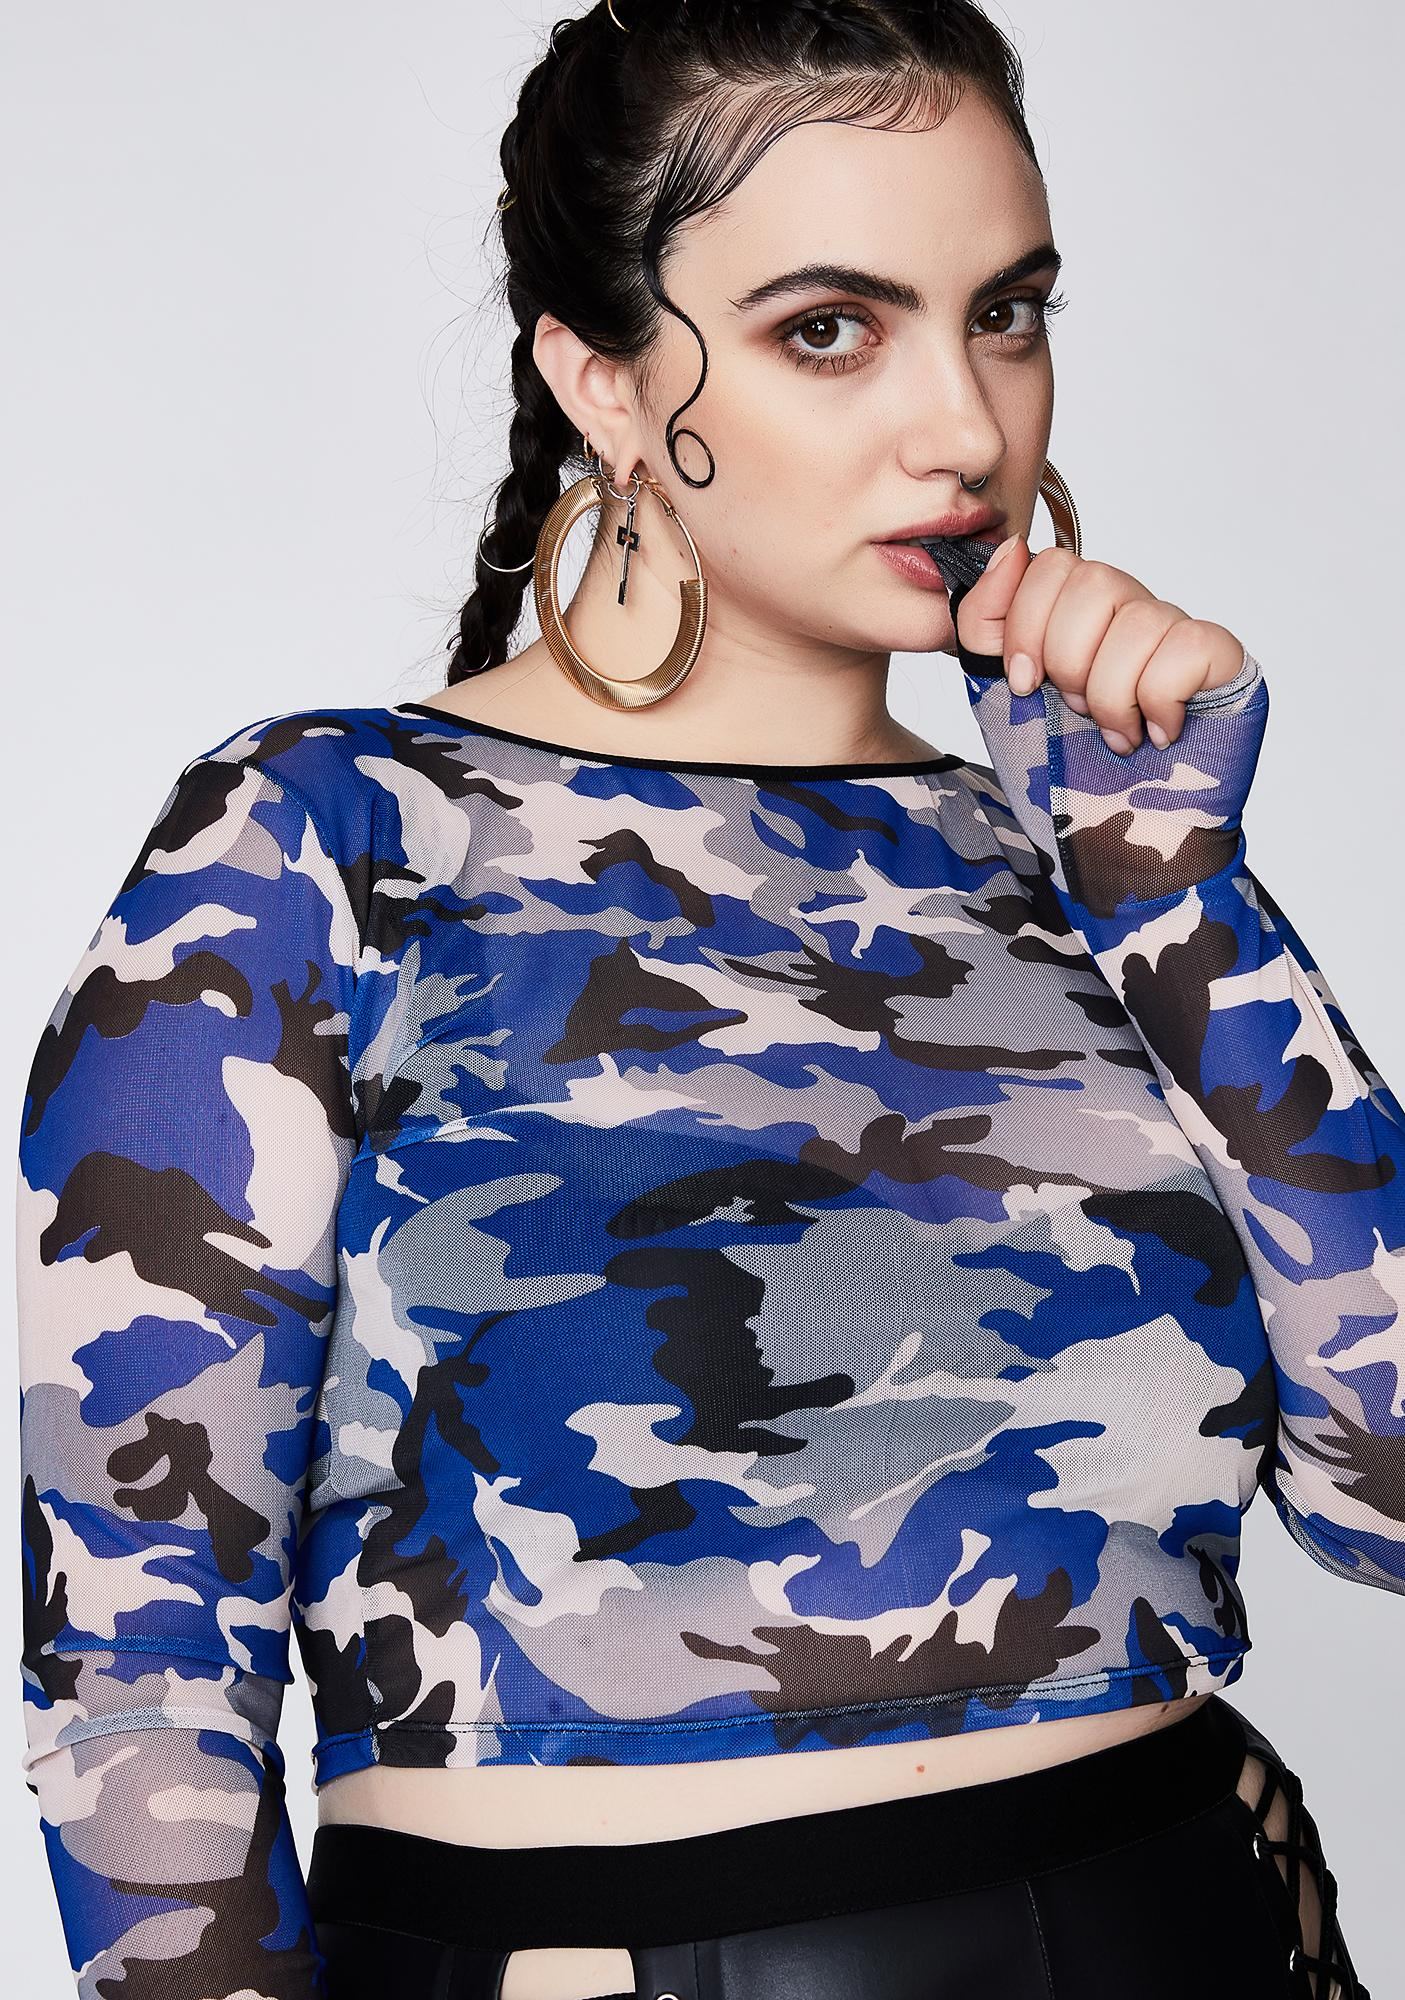 Poster Grl Stand Your Ground Camo Crop Top